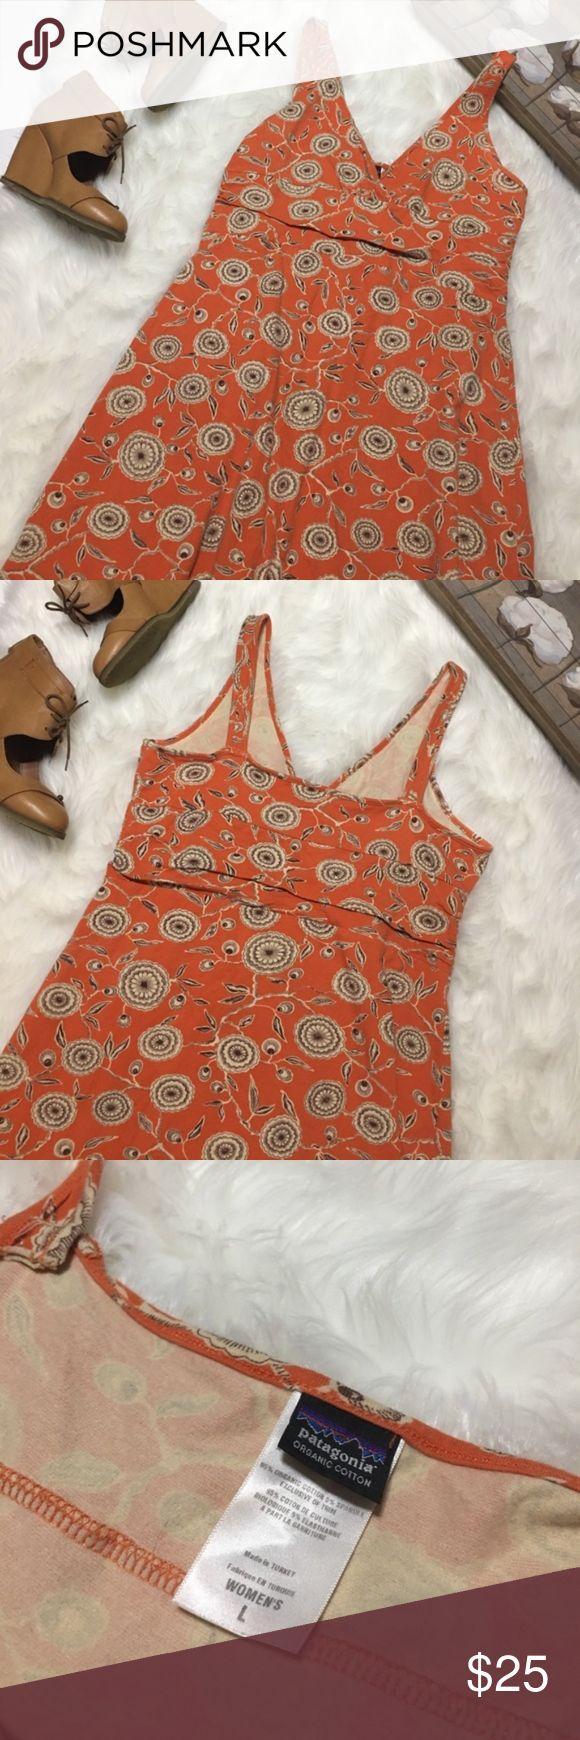 Patagonia Dress Orange Floral print dress by Patagonia. Soft and somewhat stretchy material. Very comfortable! Size L Patagonia Dresses